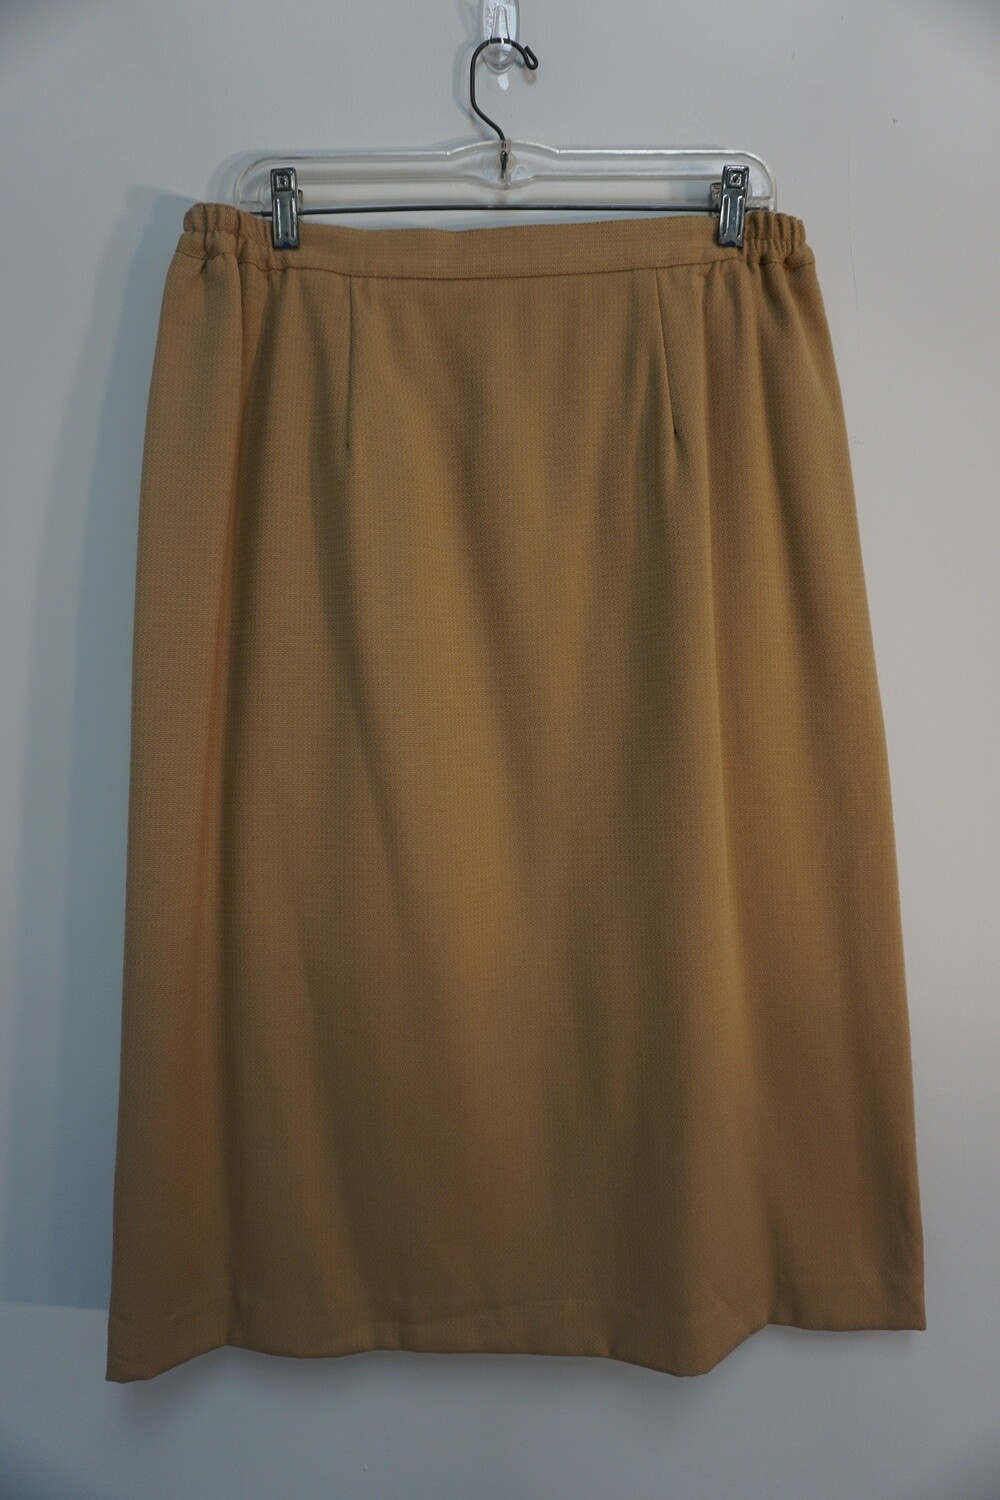 Tan Skirt Size 18